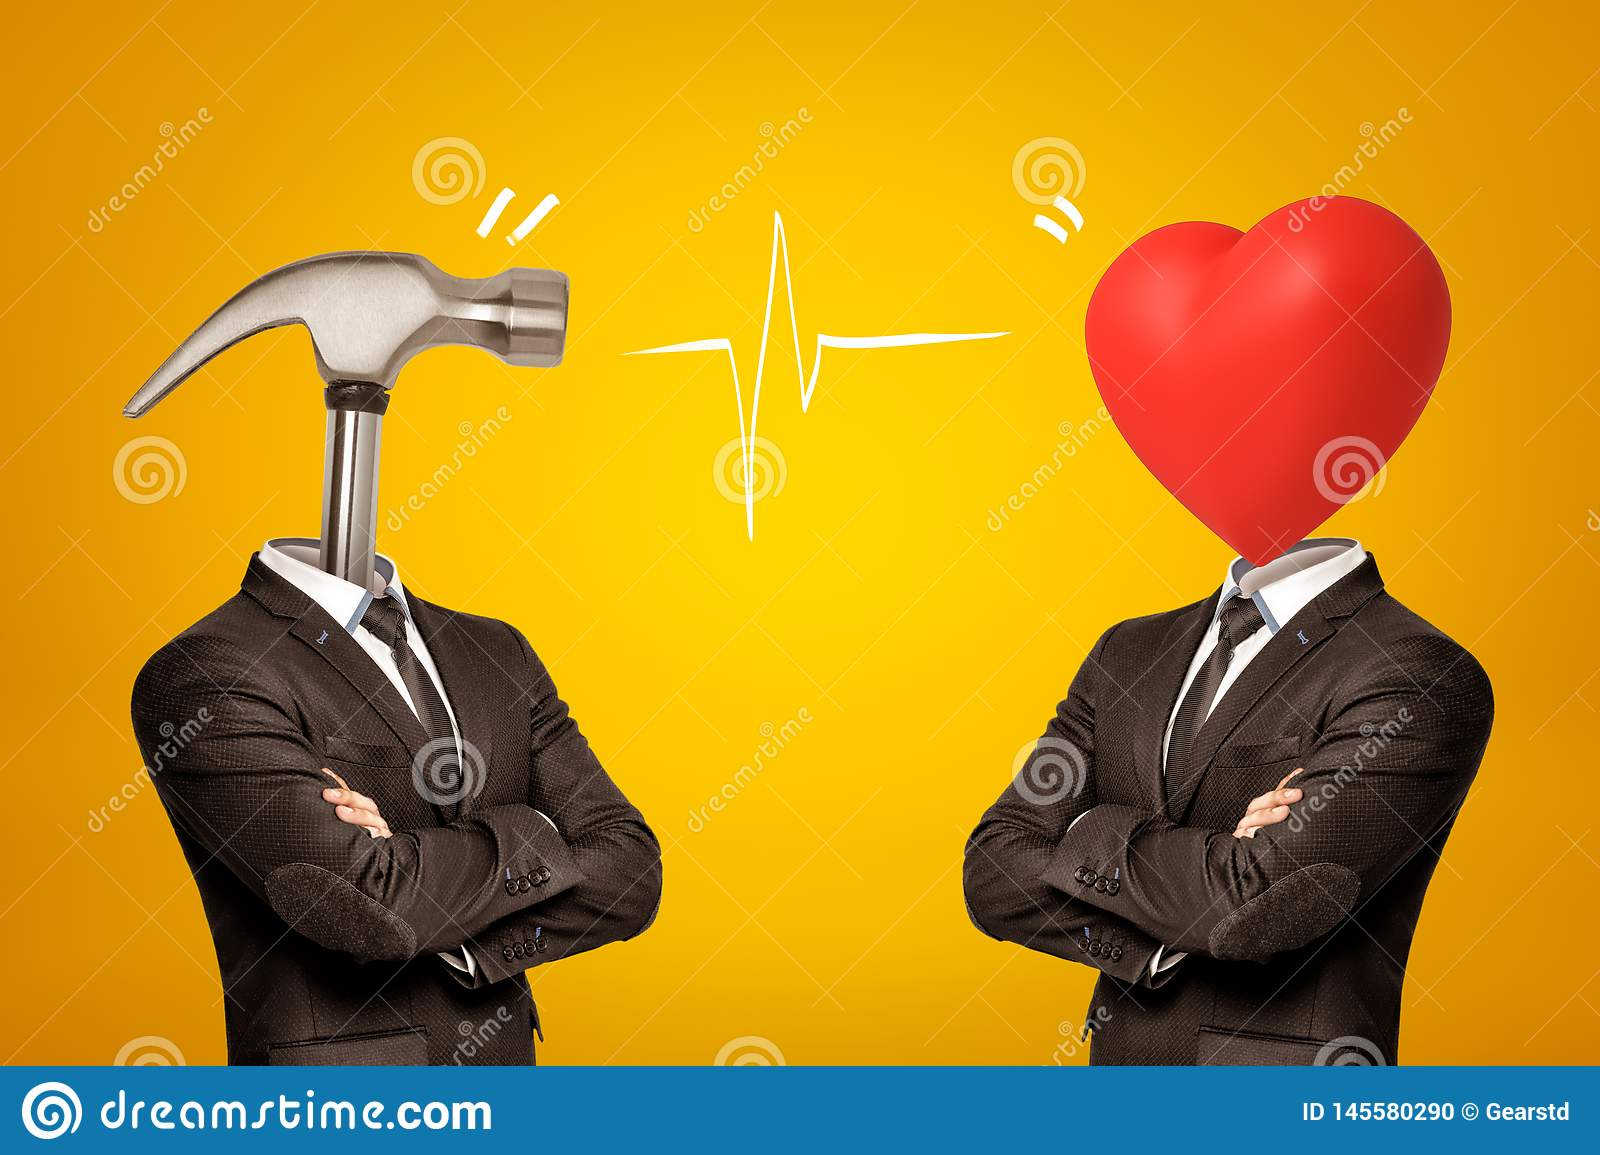 Two businessmen with metal hammer and red heart instead of their heads on yellow background